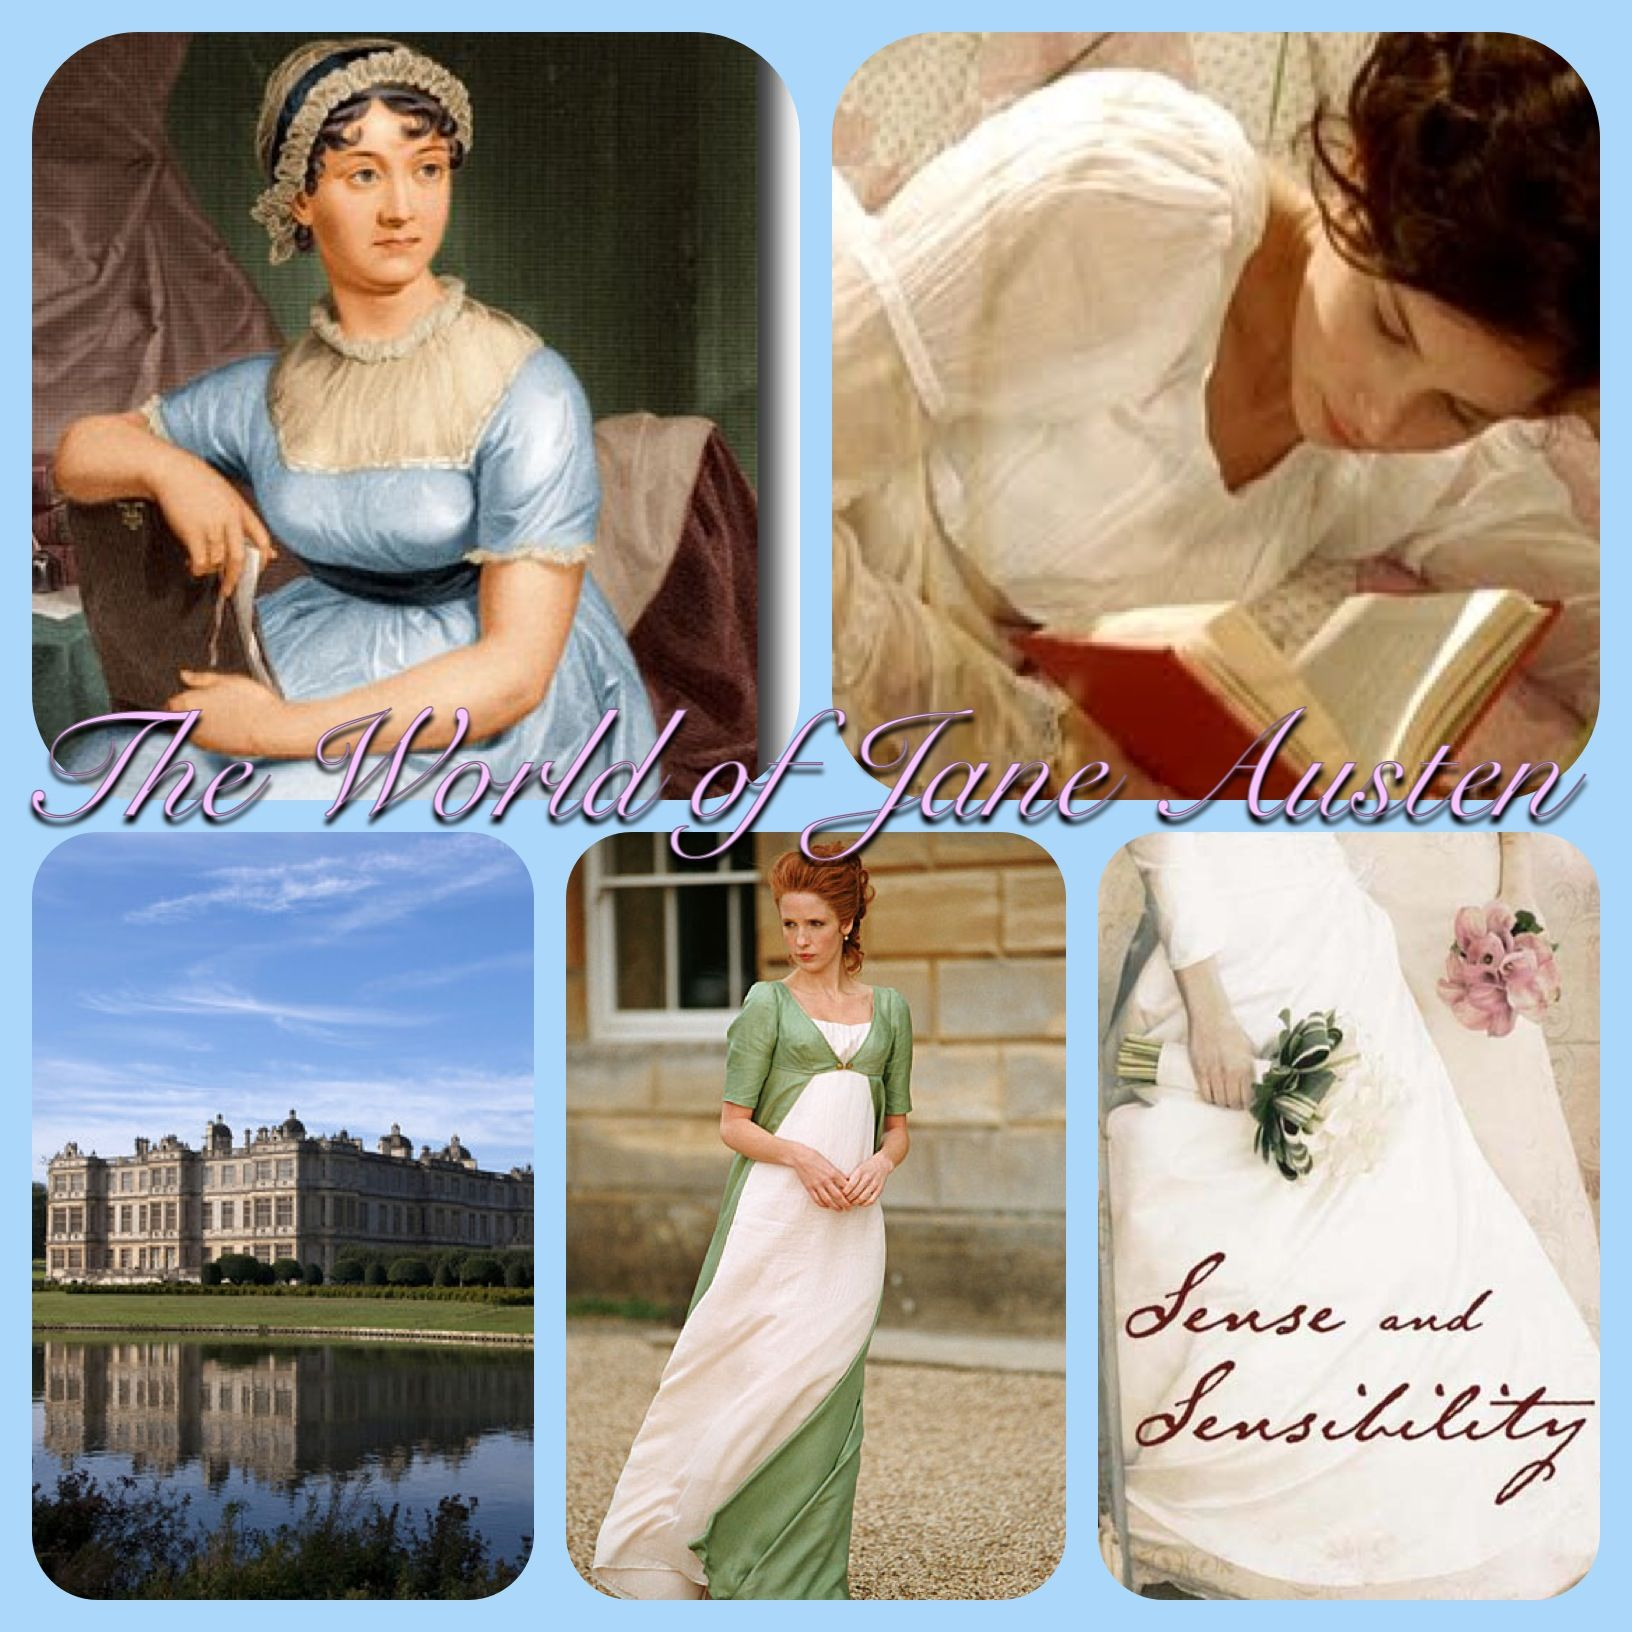 World of Jane Austen